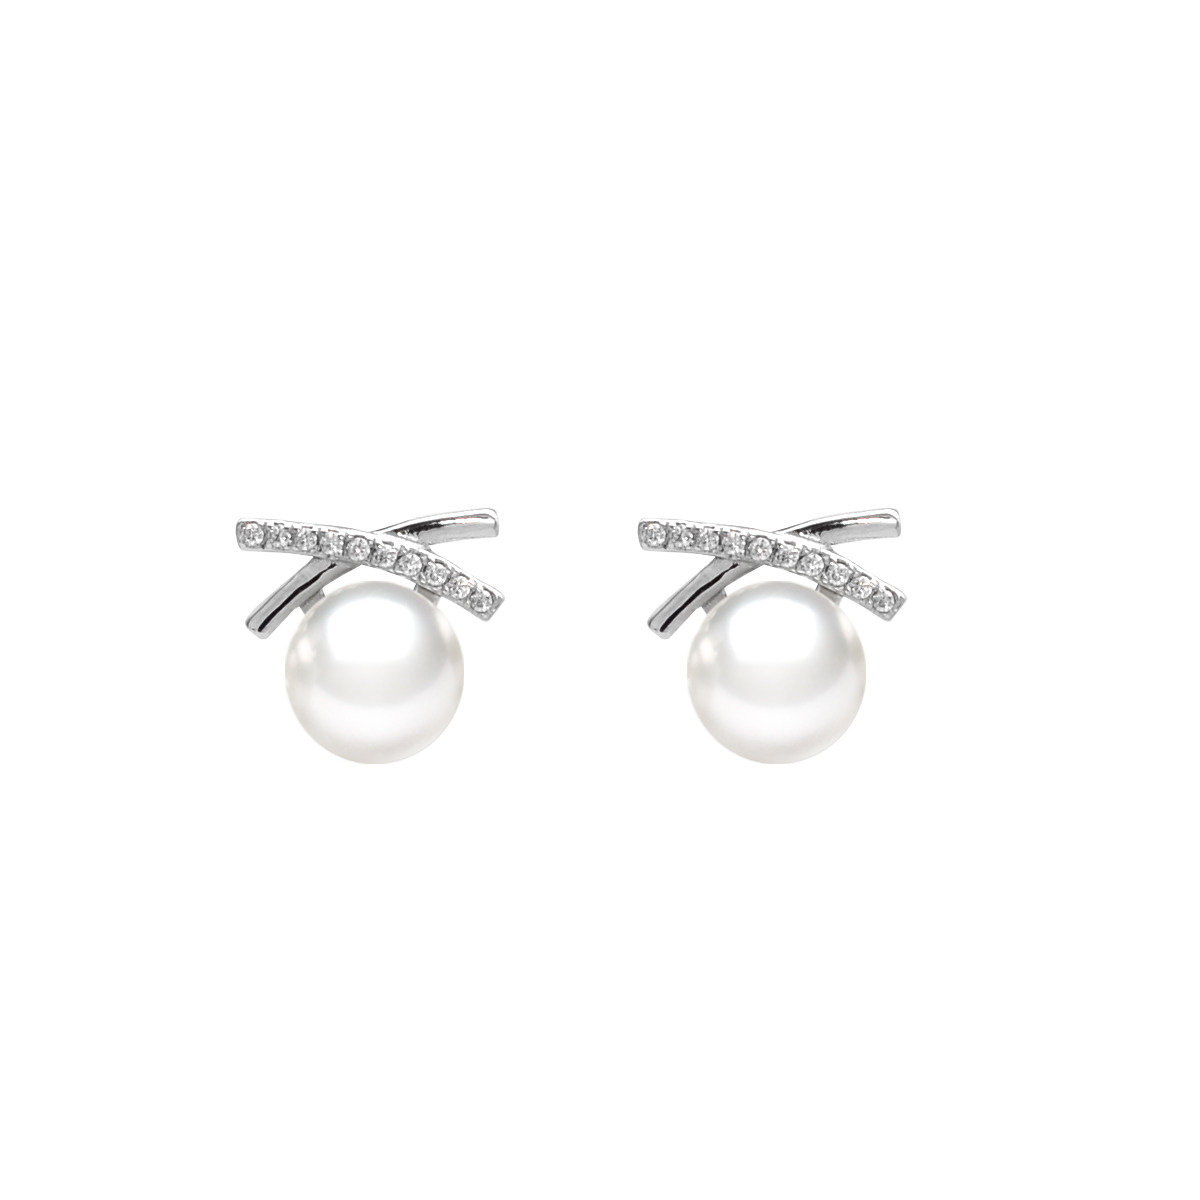 Cultured Fresh water Pearl with 925 silver mounted with cz Earring